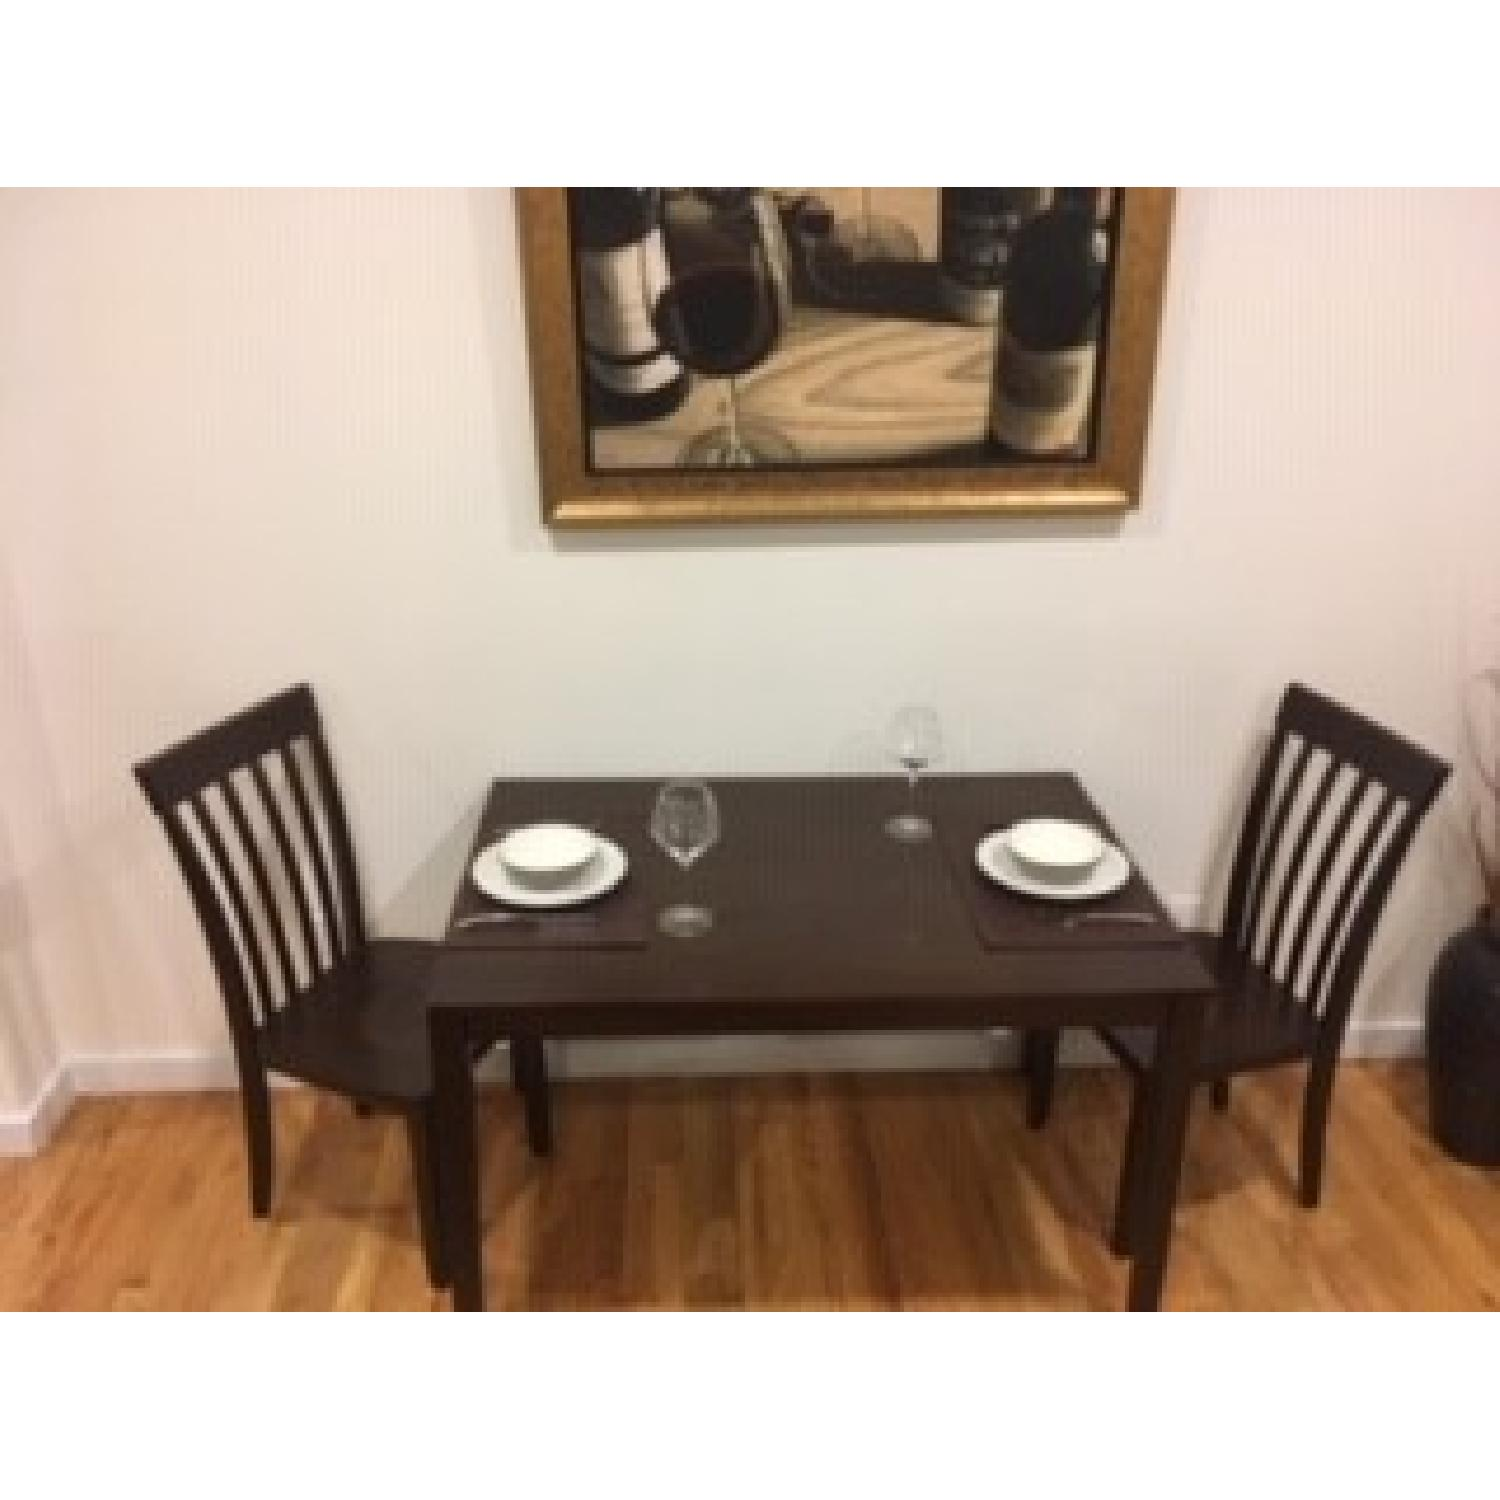 Value City Furniture Espresso Dining Table w/ 2 Chairs - AptDeco